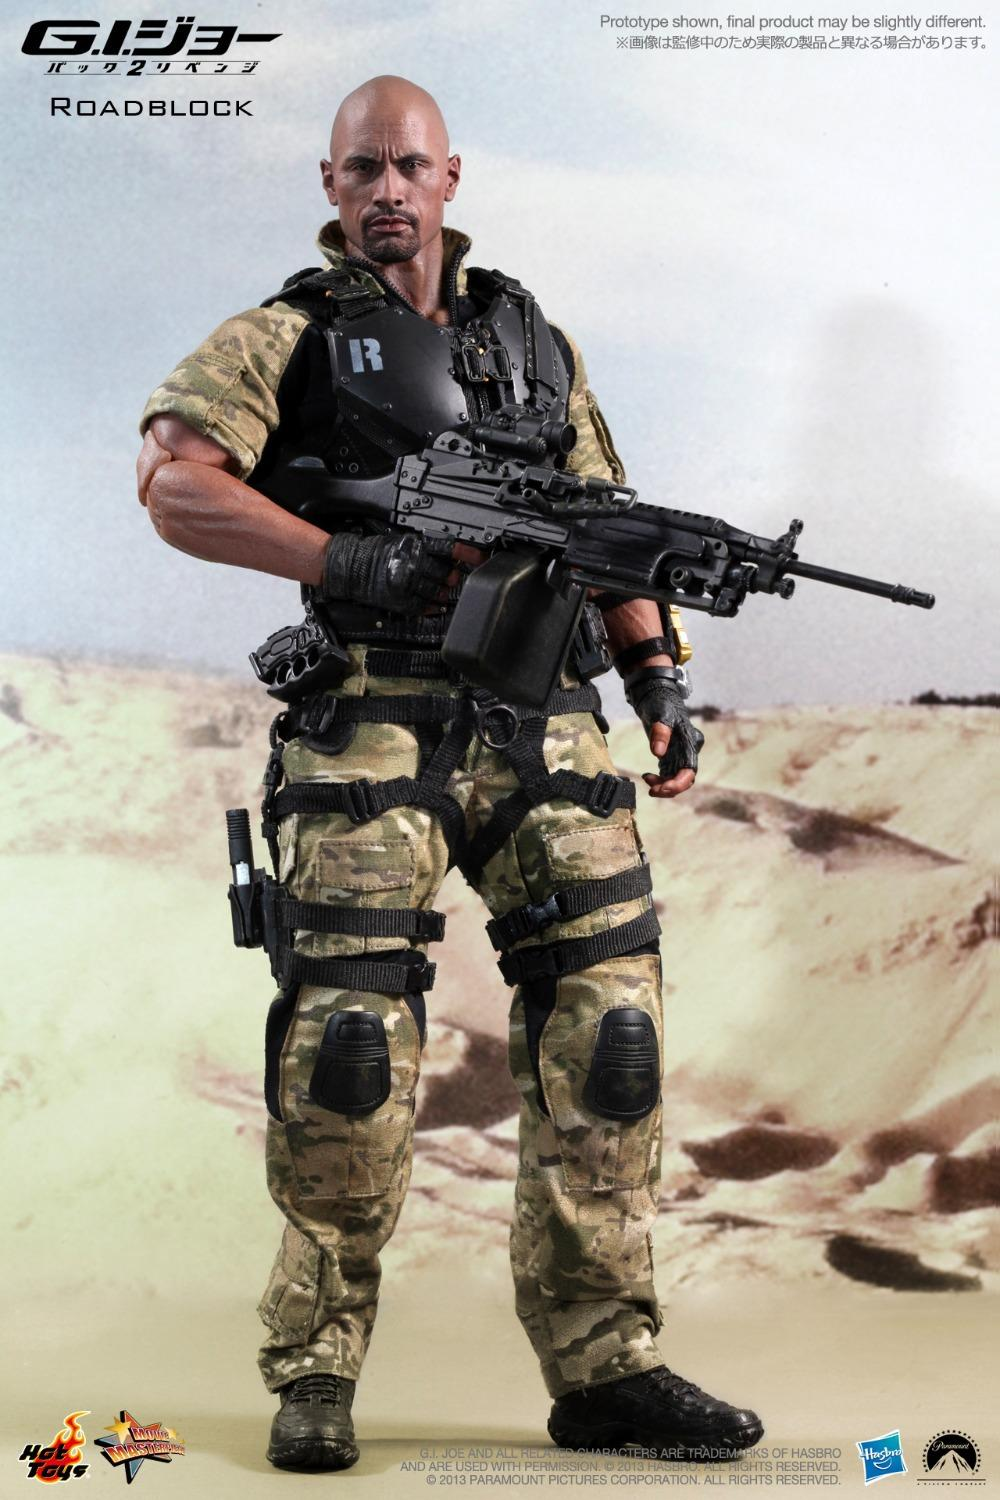 1/6 scale doll model Roadblock Dwayne Johnson in G.I.Joe: Retaliation.12 action figure doll.Collectible Figure toy mick johnson motivation is at